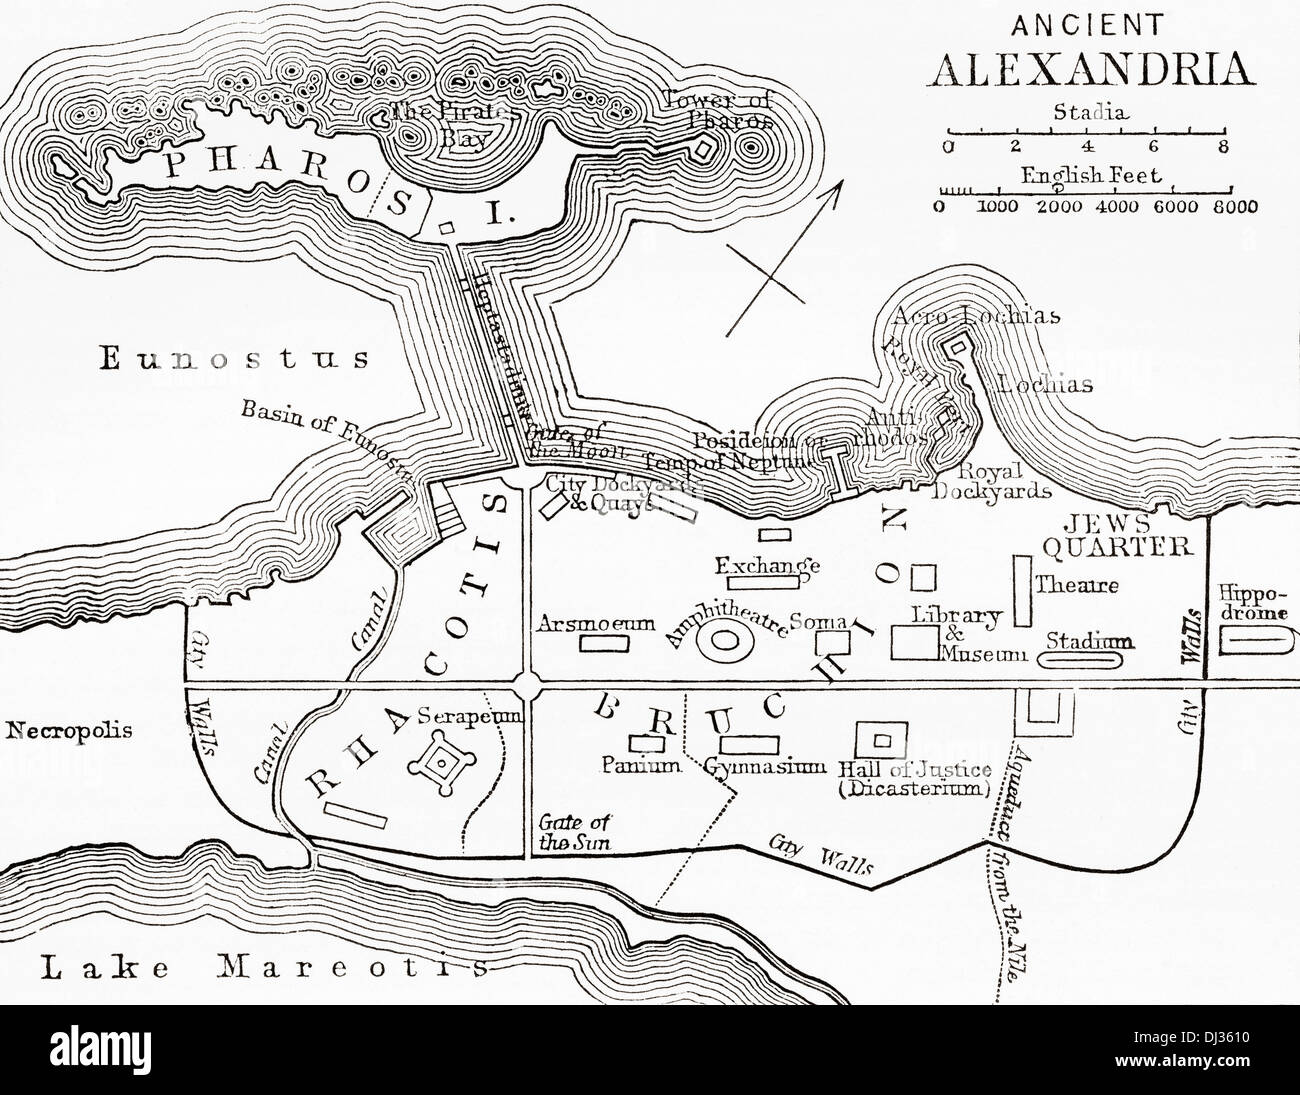 Map of ancient Alexandria, Egypt. - Stock Image